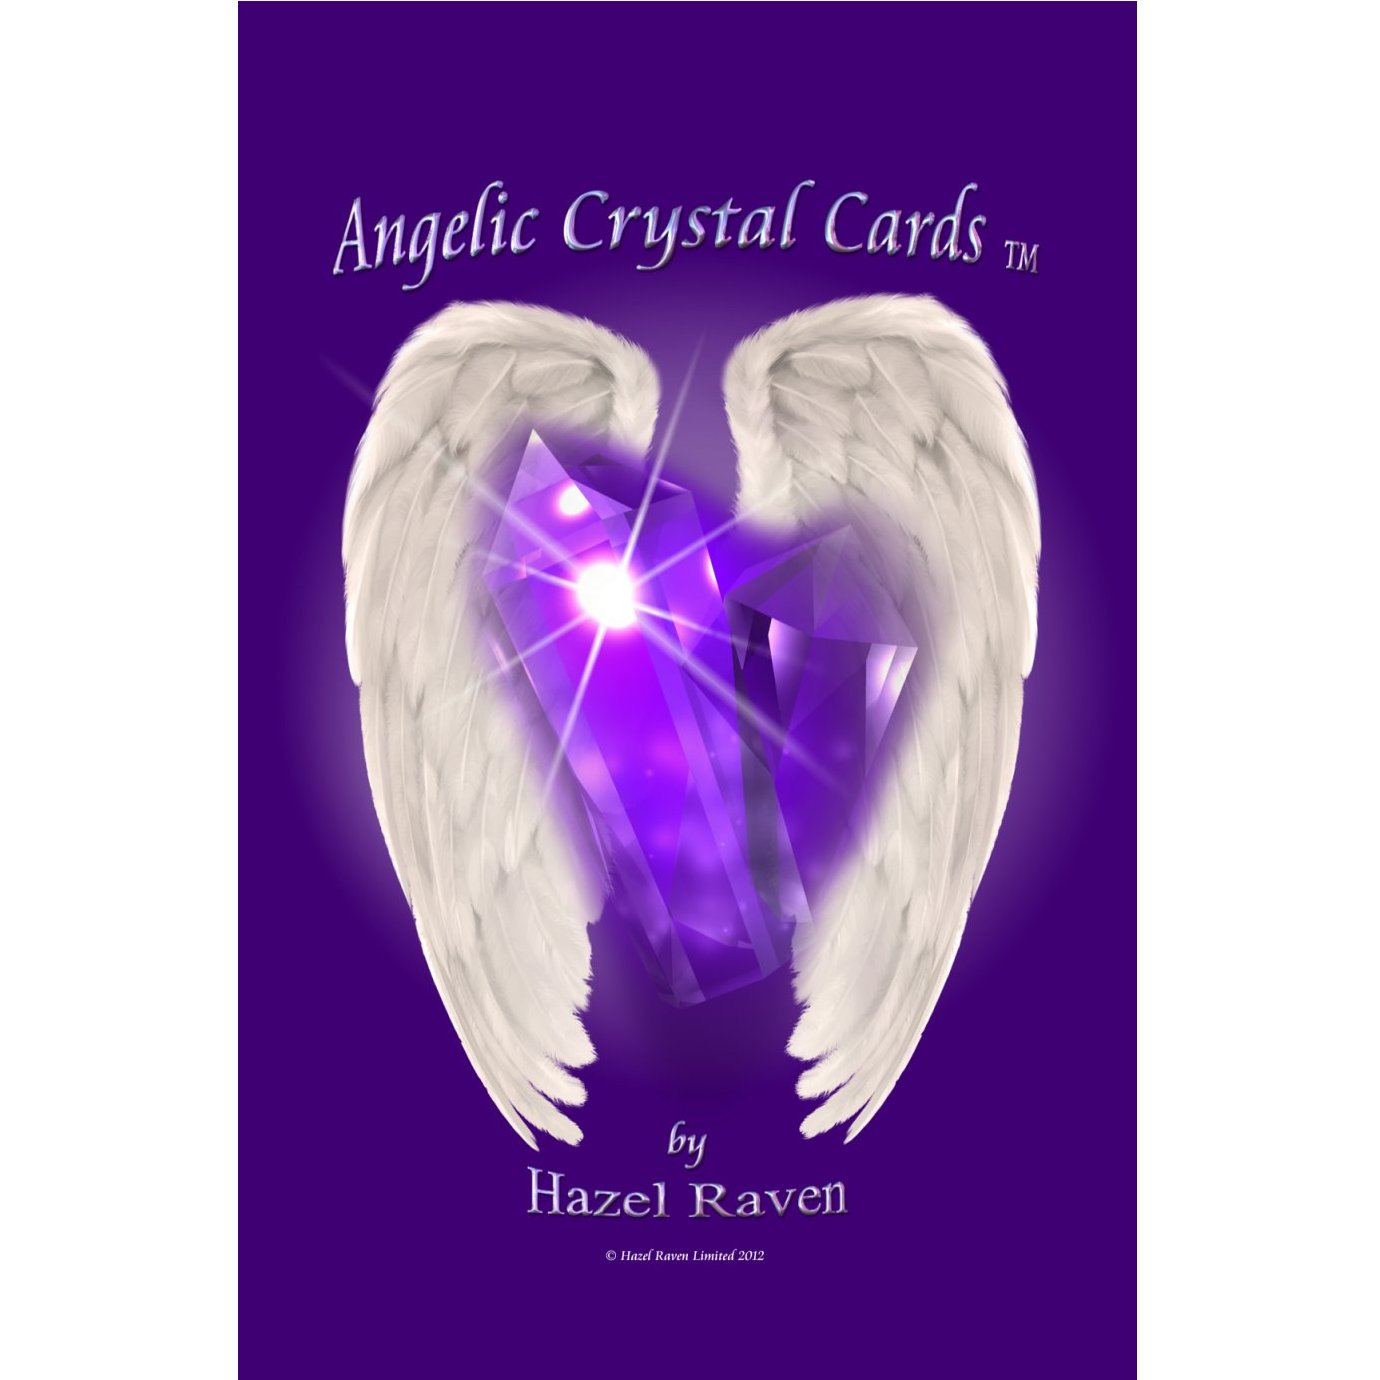 Angelic Crystal Cards